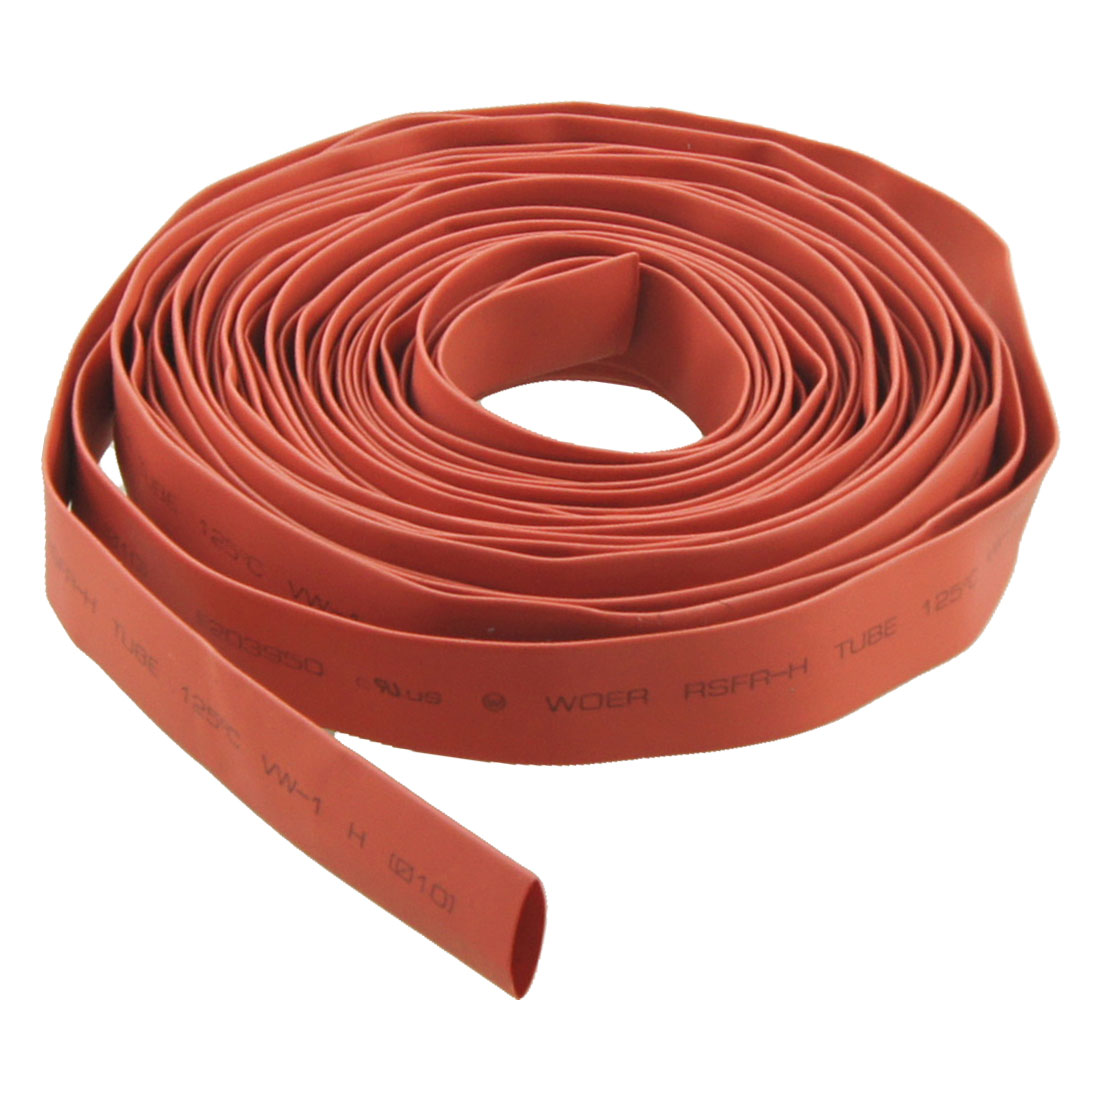 Ratio 2:1 10mm Dia. Red Heat Shrinkable Tube Shrinking Tubing 8M